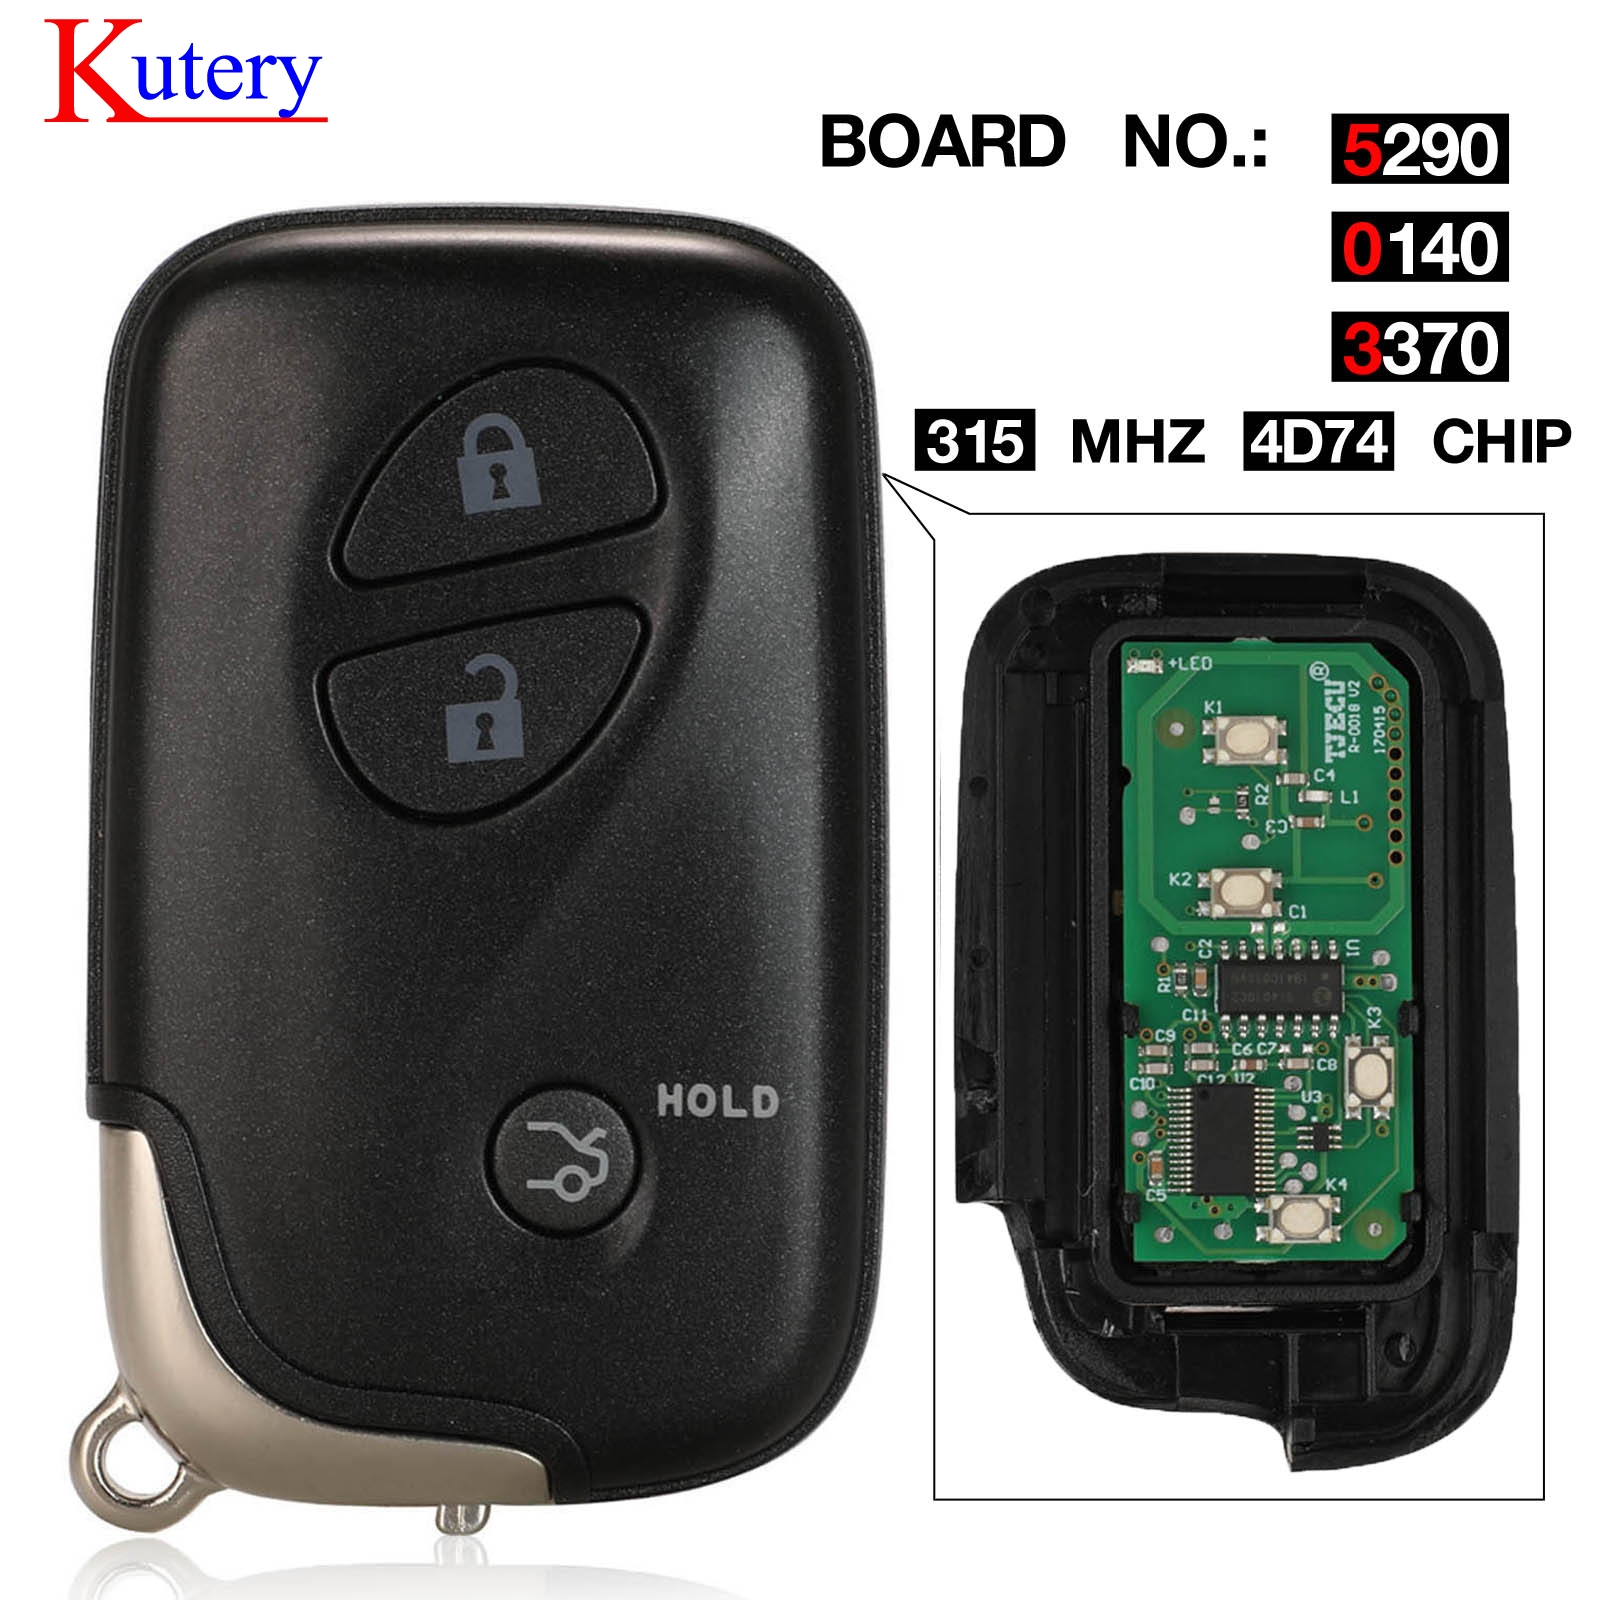 kutery 3 Buttons 315MHz PCB 5290 0140 3370 Smart Remote <font><b>Key</b></font> For <font><b>Lexus</b></font> <font><b>GX460</b></font> ES350 ES240 IS250 IS300 09 -2017 Chip ID74 ID71 image